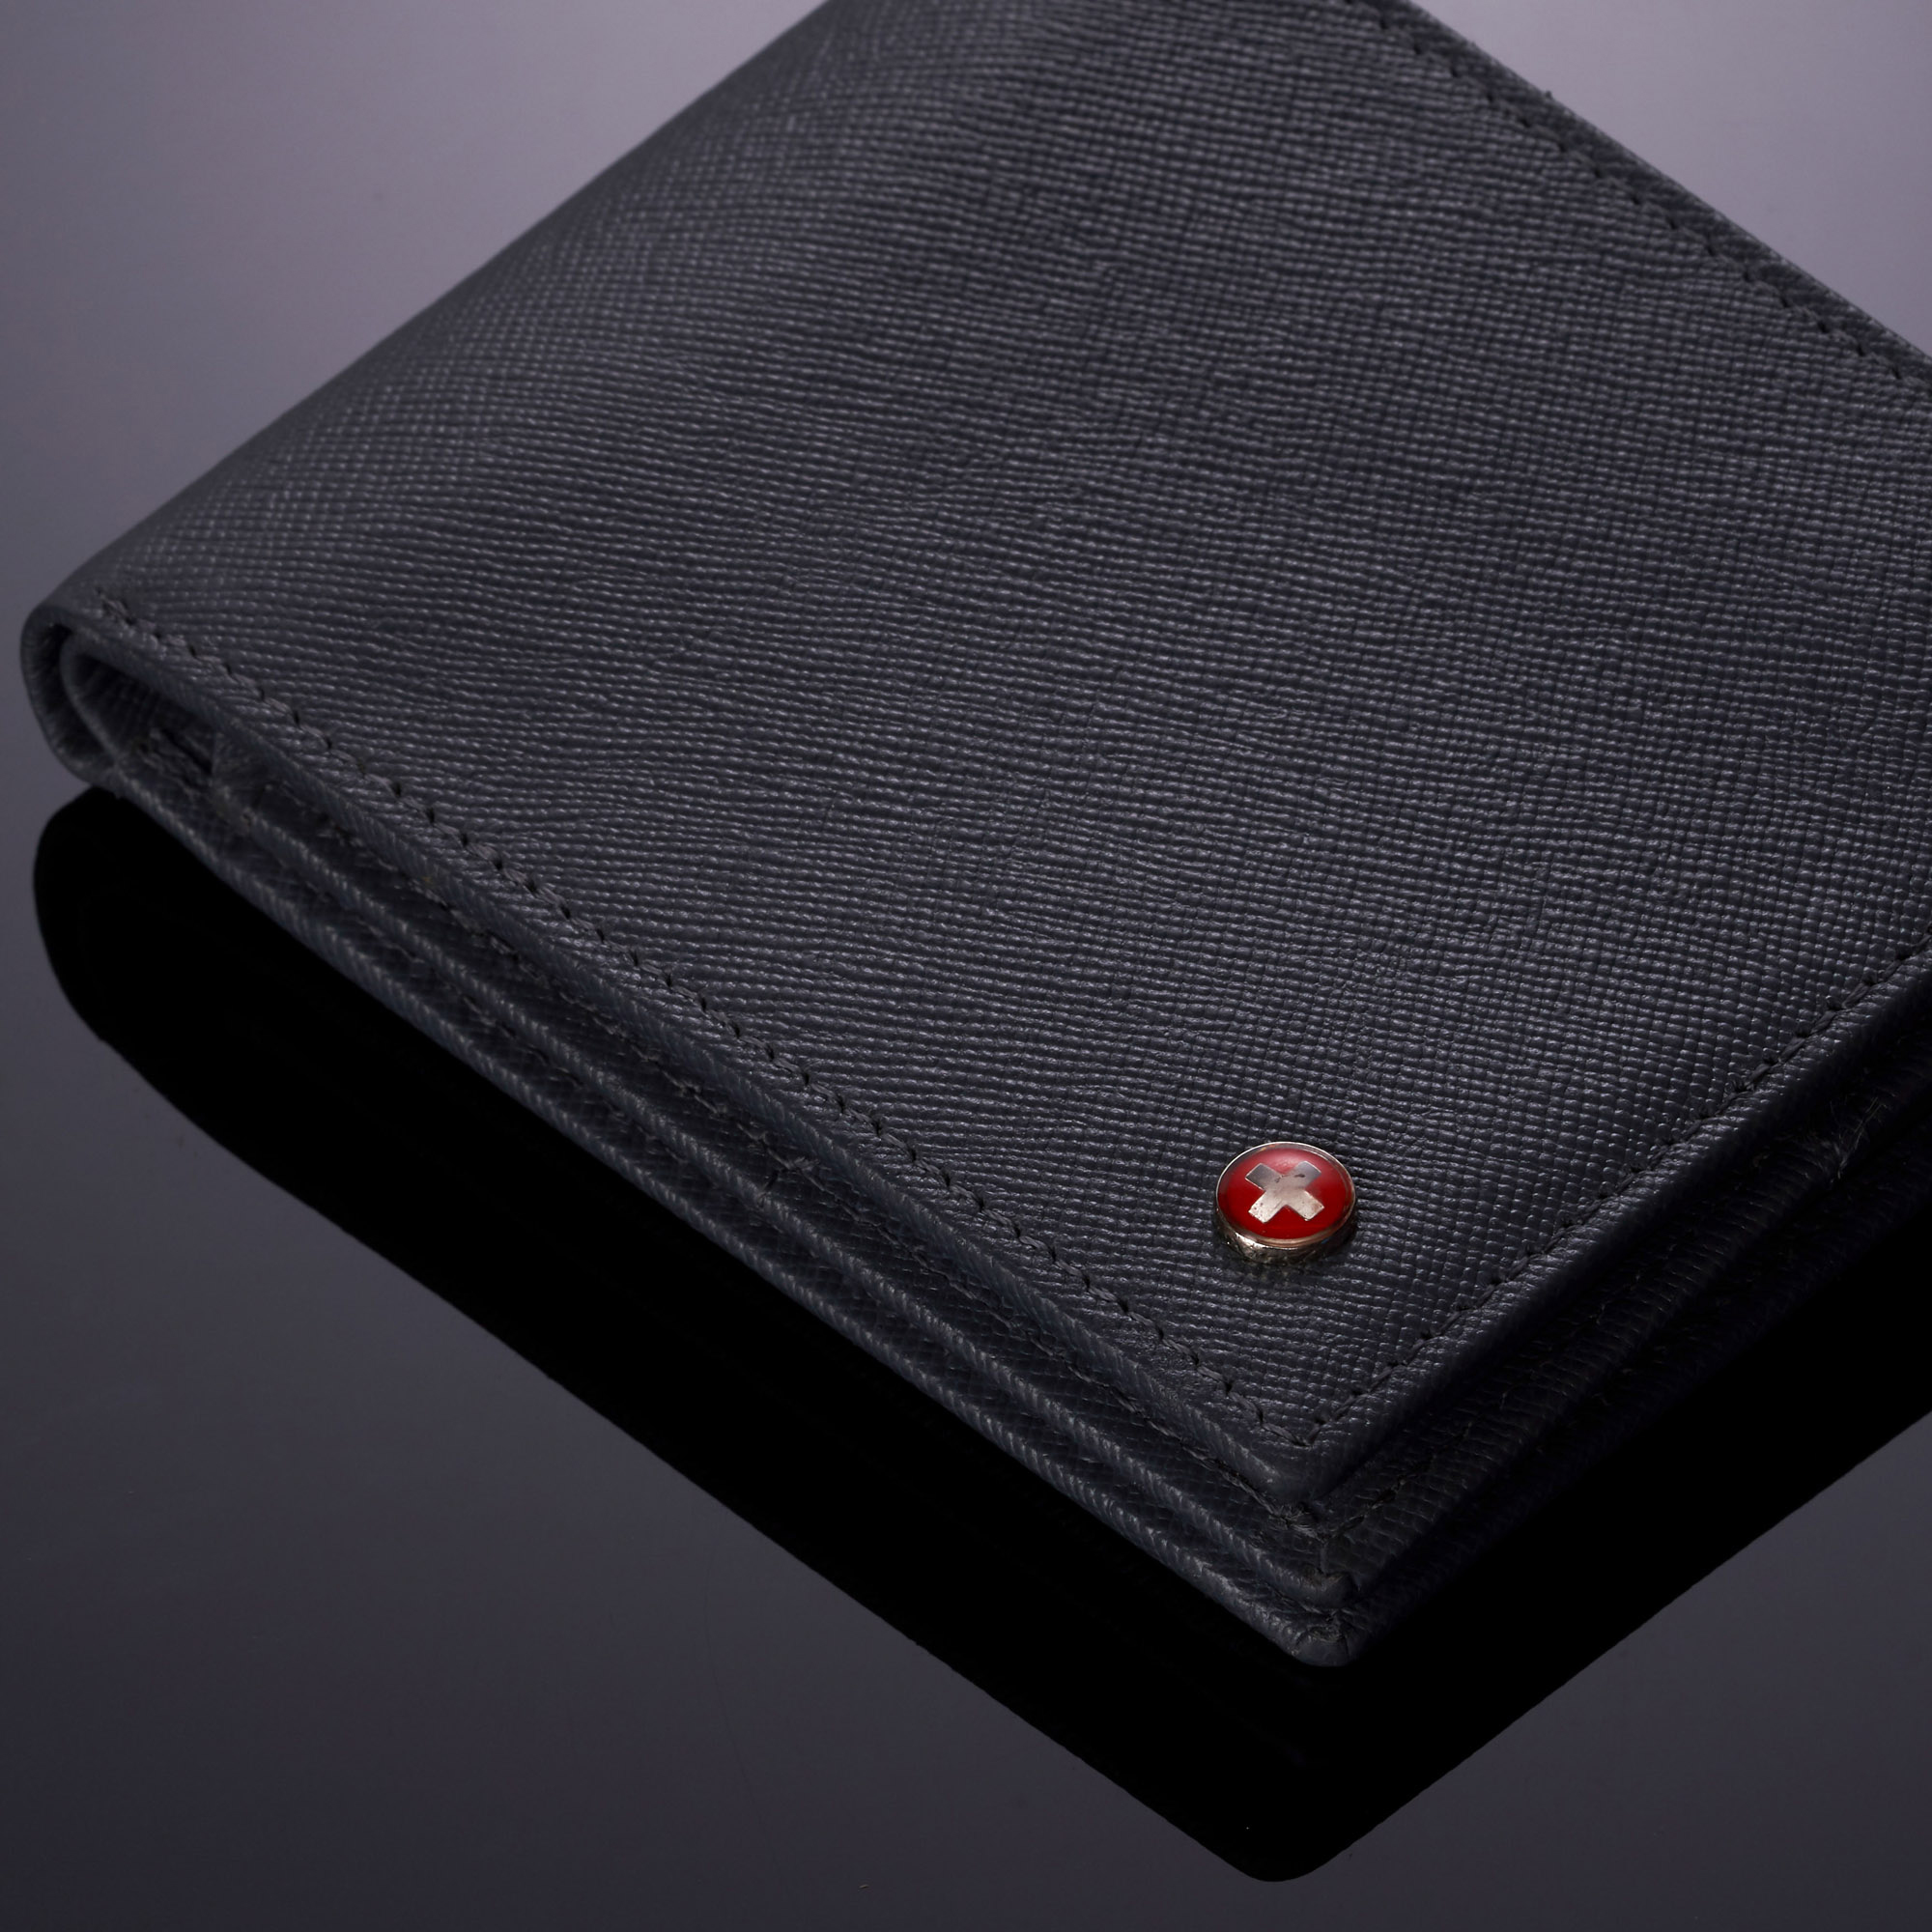 miniature 53 - Alpine-Swiss-RFID-Mens-Wallet-Deluxe-Capacity-Passcase-Bifold-Two-Bill-Sections